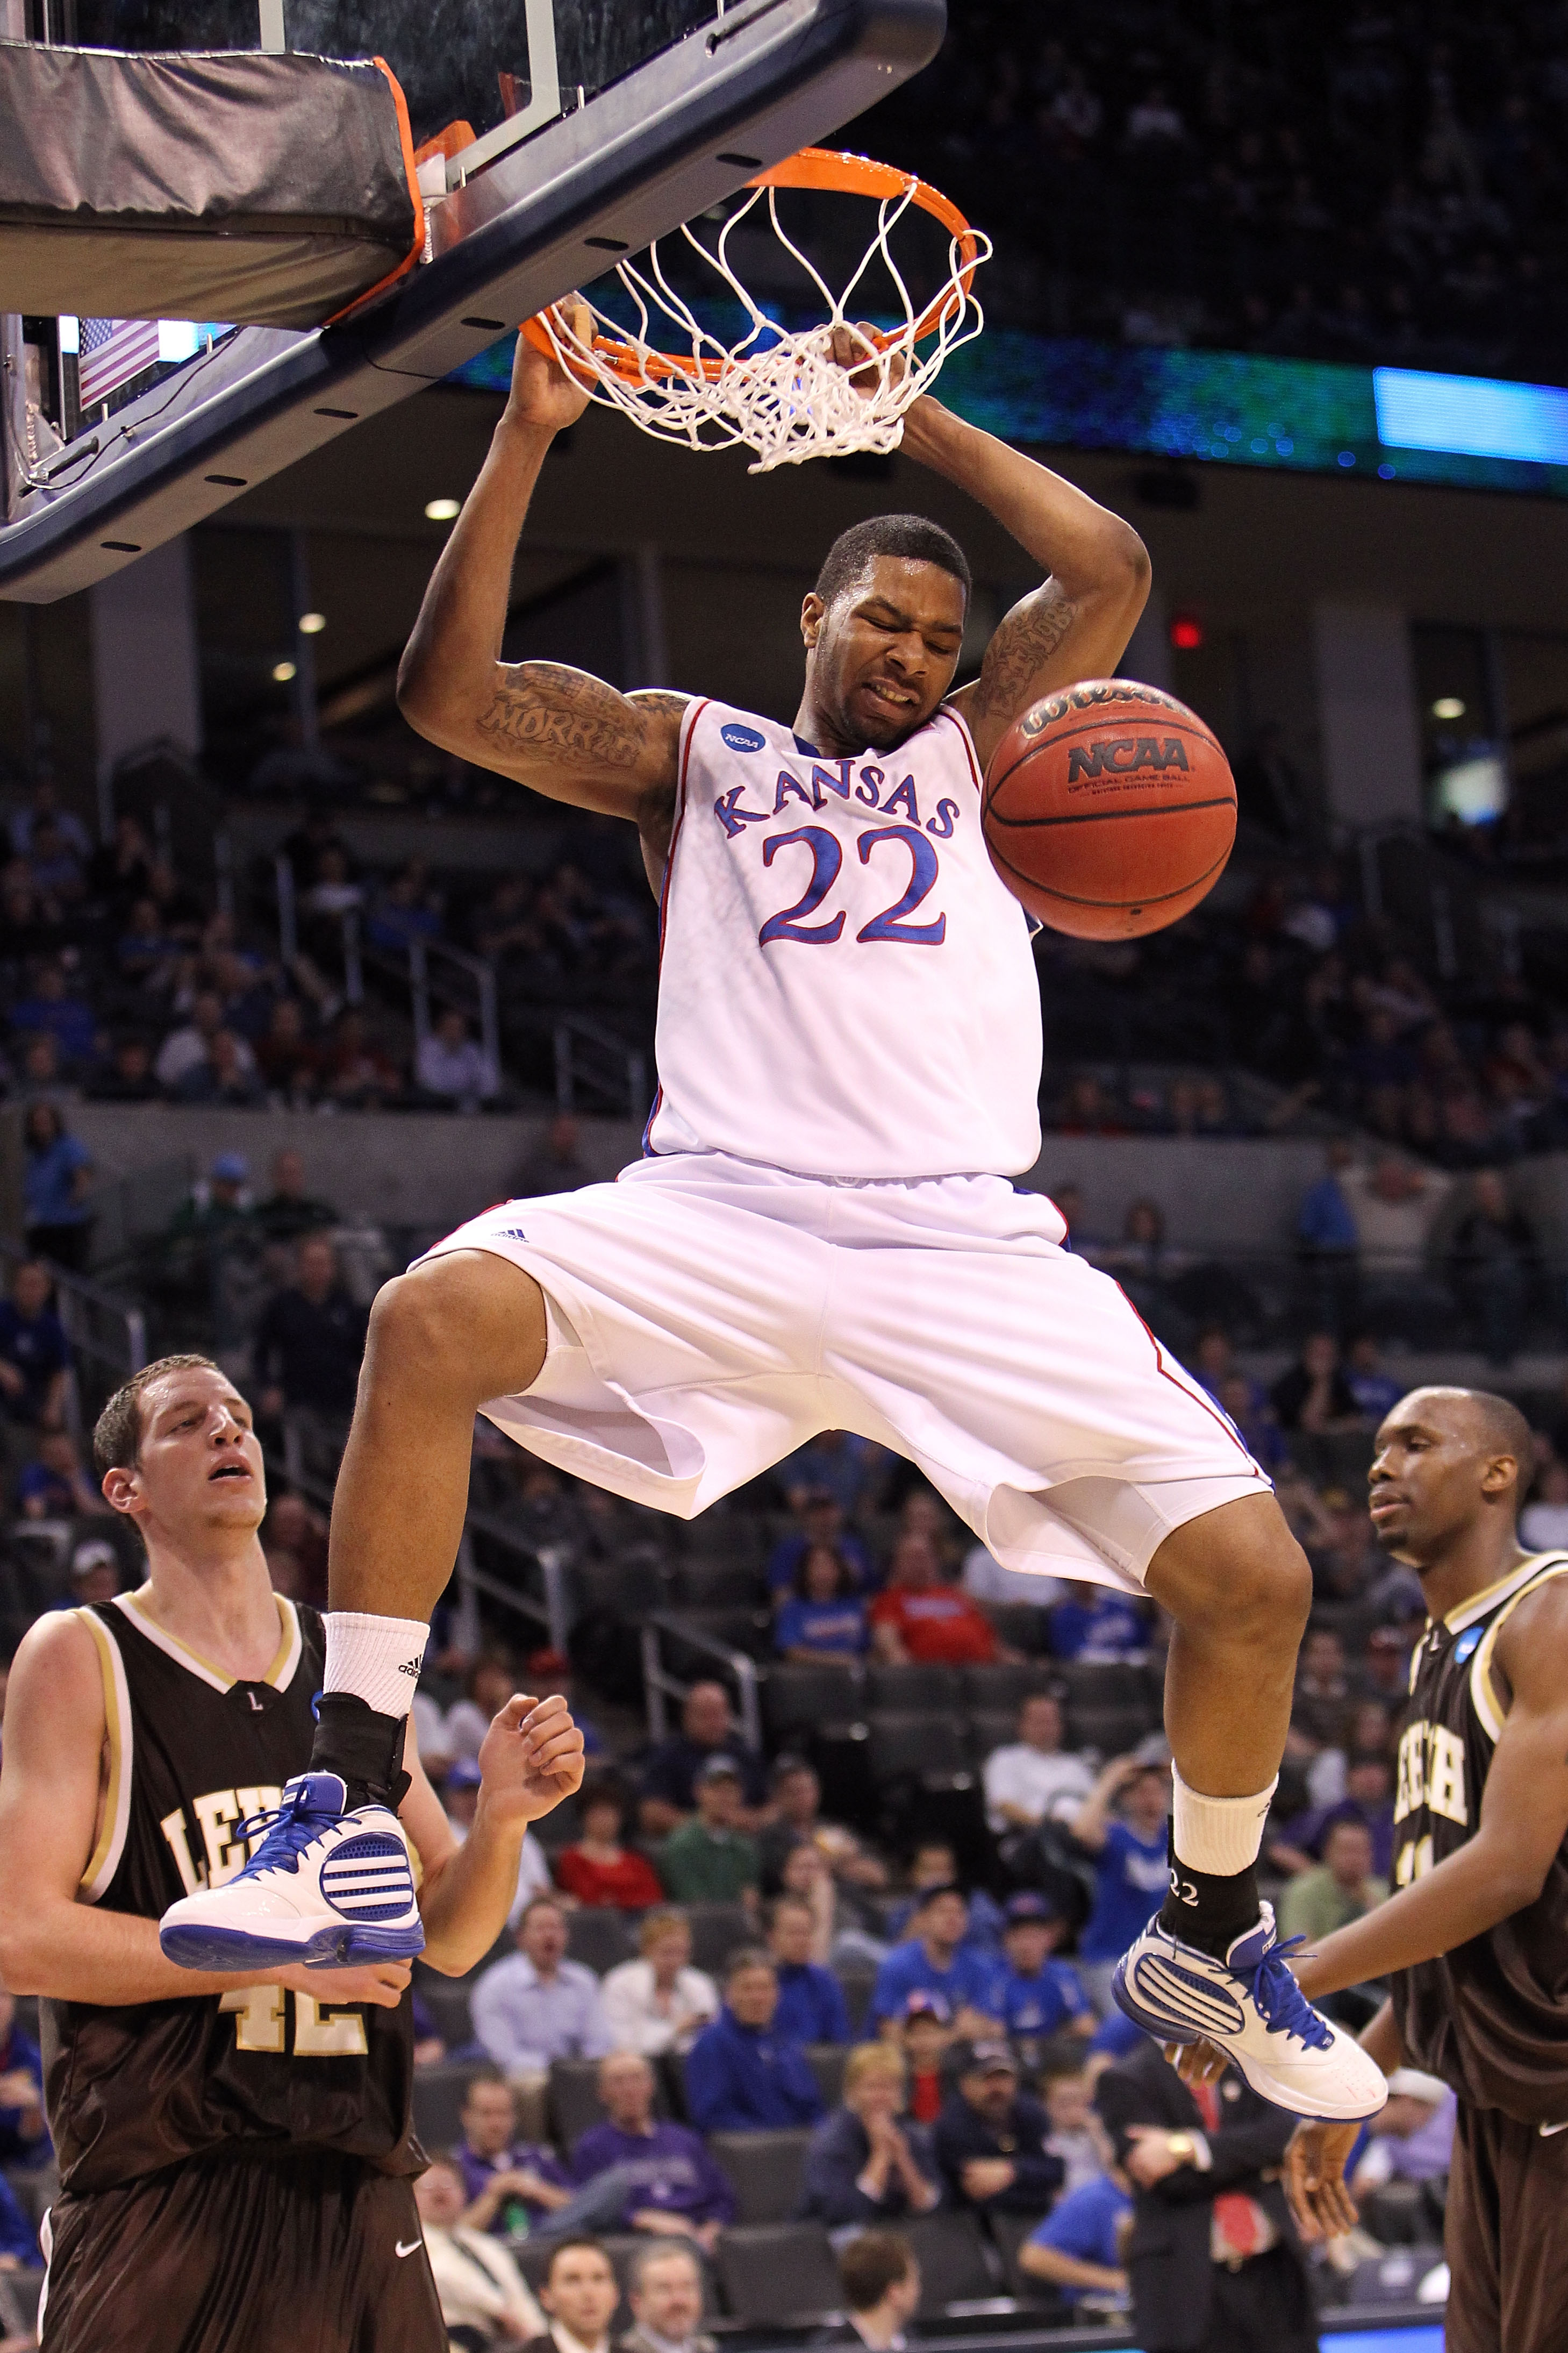 OKLAHOMA CITY - MARCH 18:  Marcus Morris #22 of the Kansas Jayhawks dunks against the Lehigh Mountain Hawks during the first round of the 2010 NCAA men's basketball tournament at Ford Center on March 18, 2010 in Oklahoma City, Oklahoma.  (Photo by Ronald